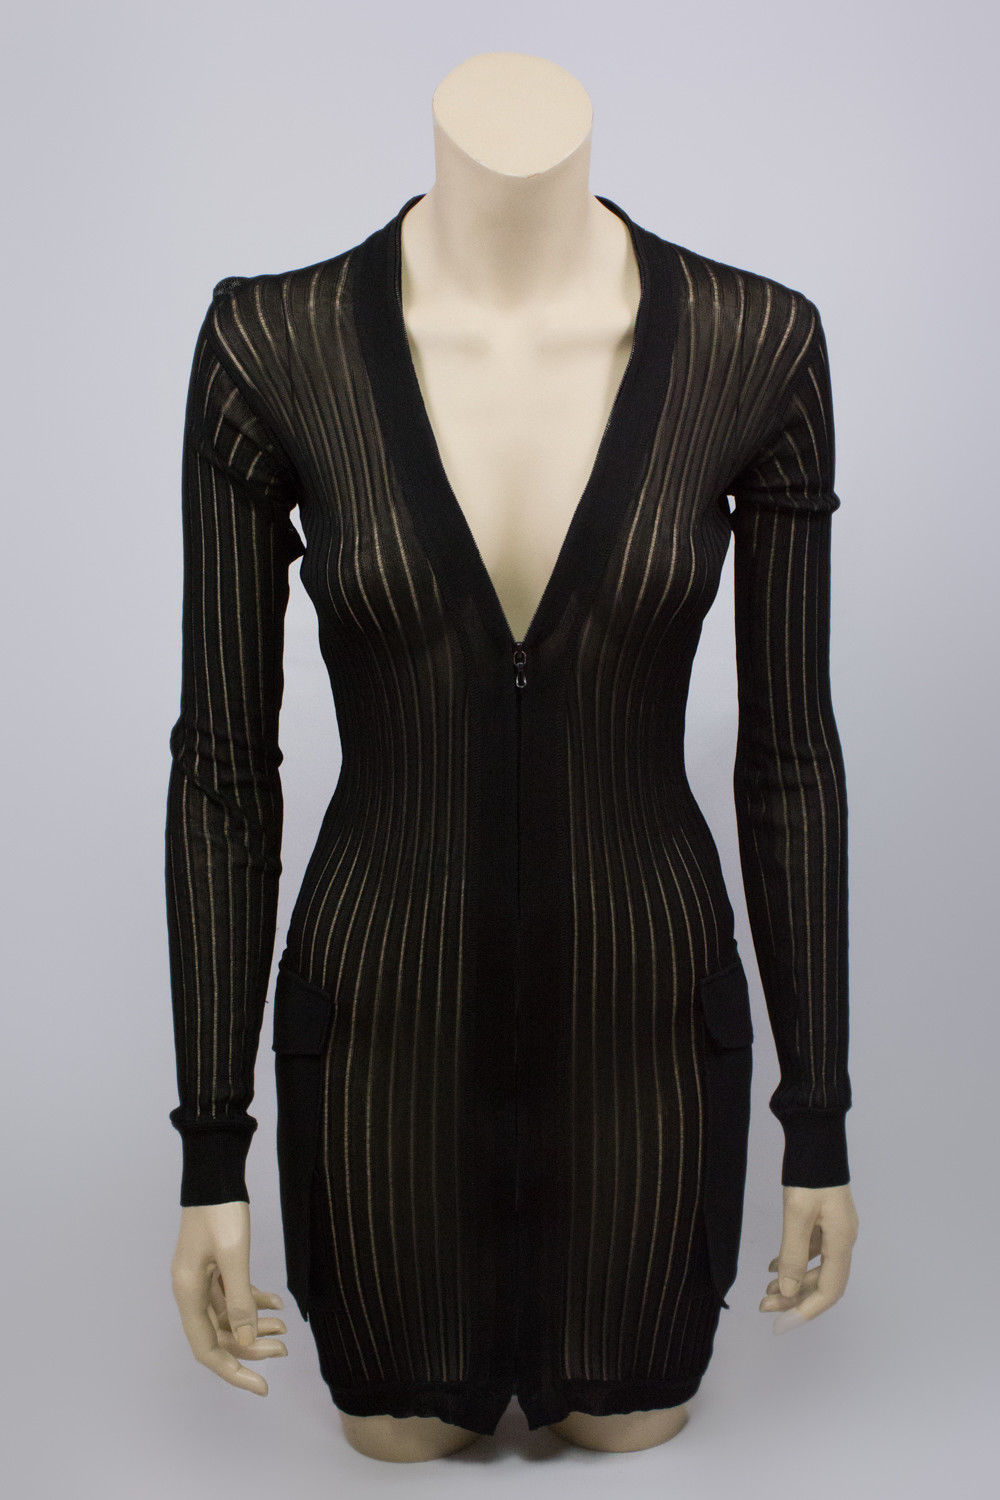 Roland Mouret Sheer Transparent Zip Front Cardigan Dress XS (US 2, UK 6) - secondfirst